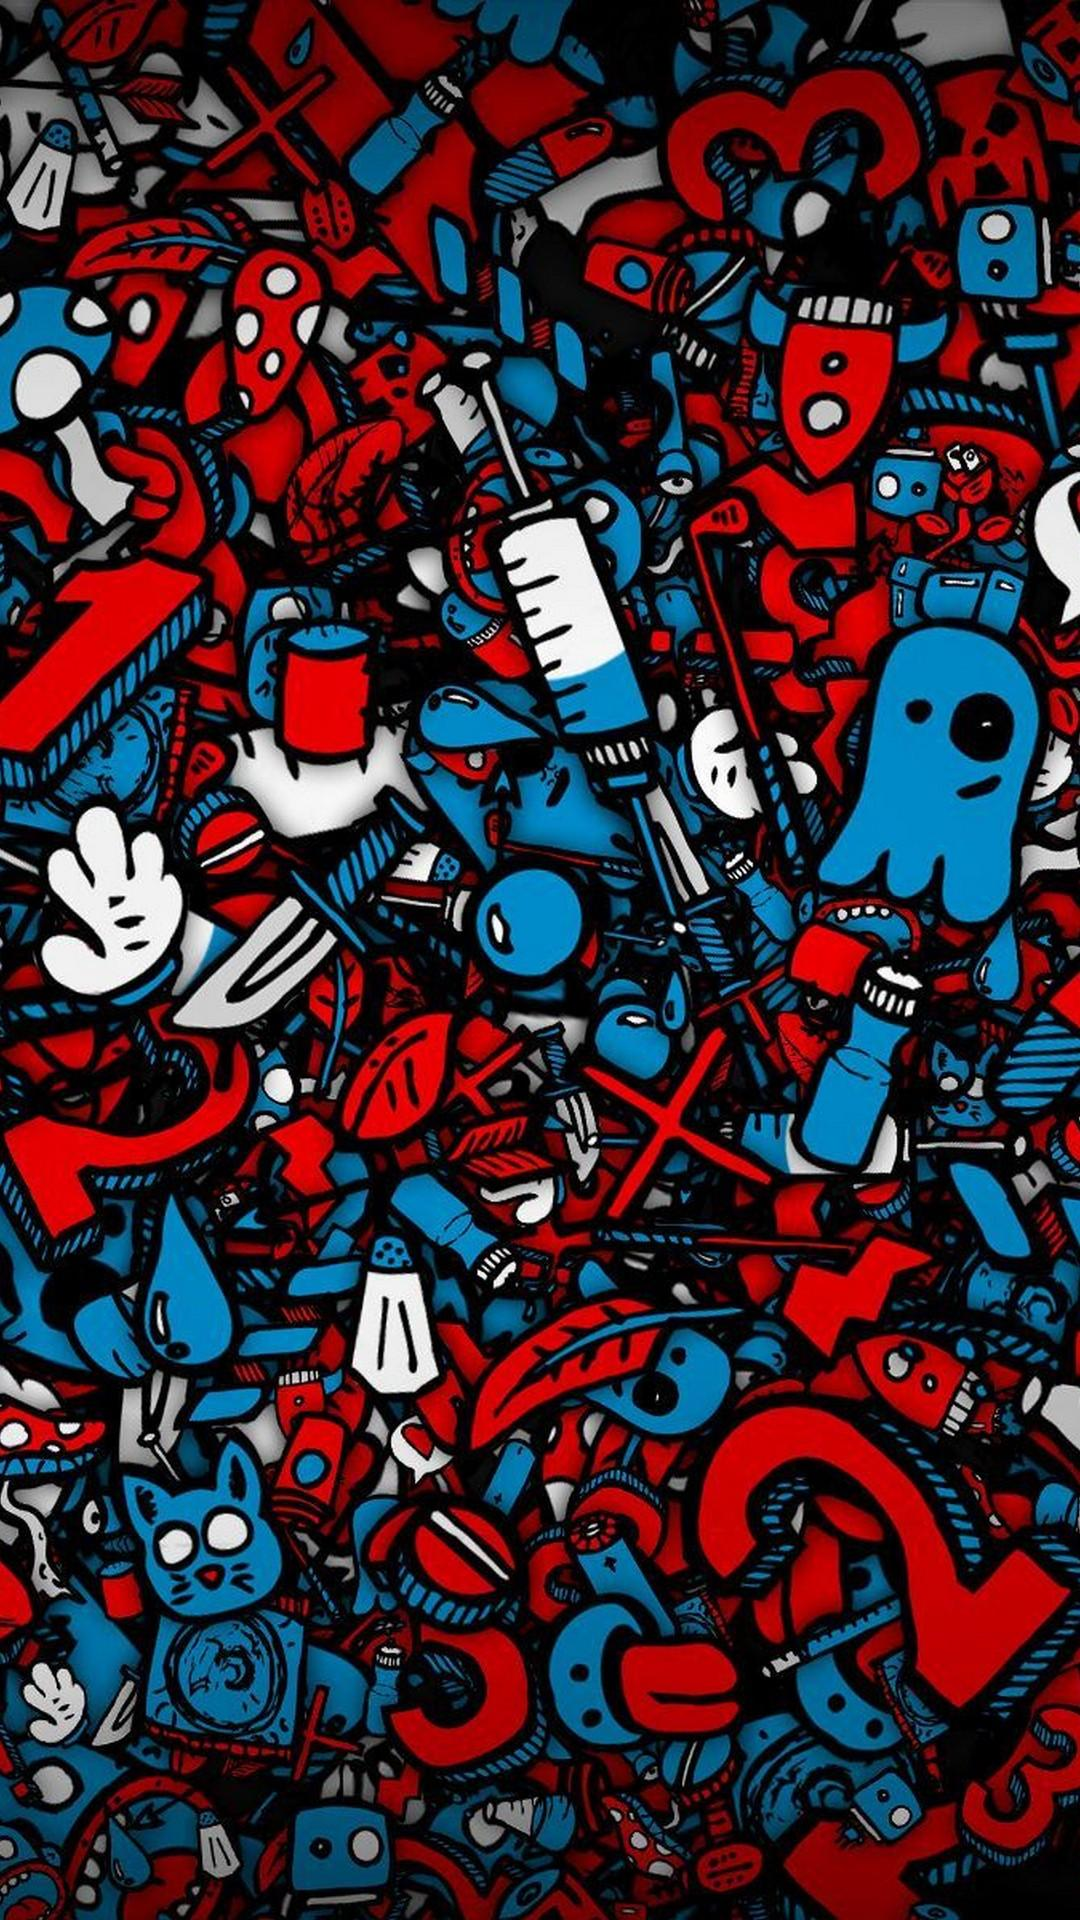 Awesome Graffiti Wallpaper For Iphone